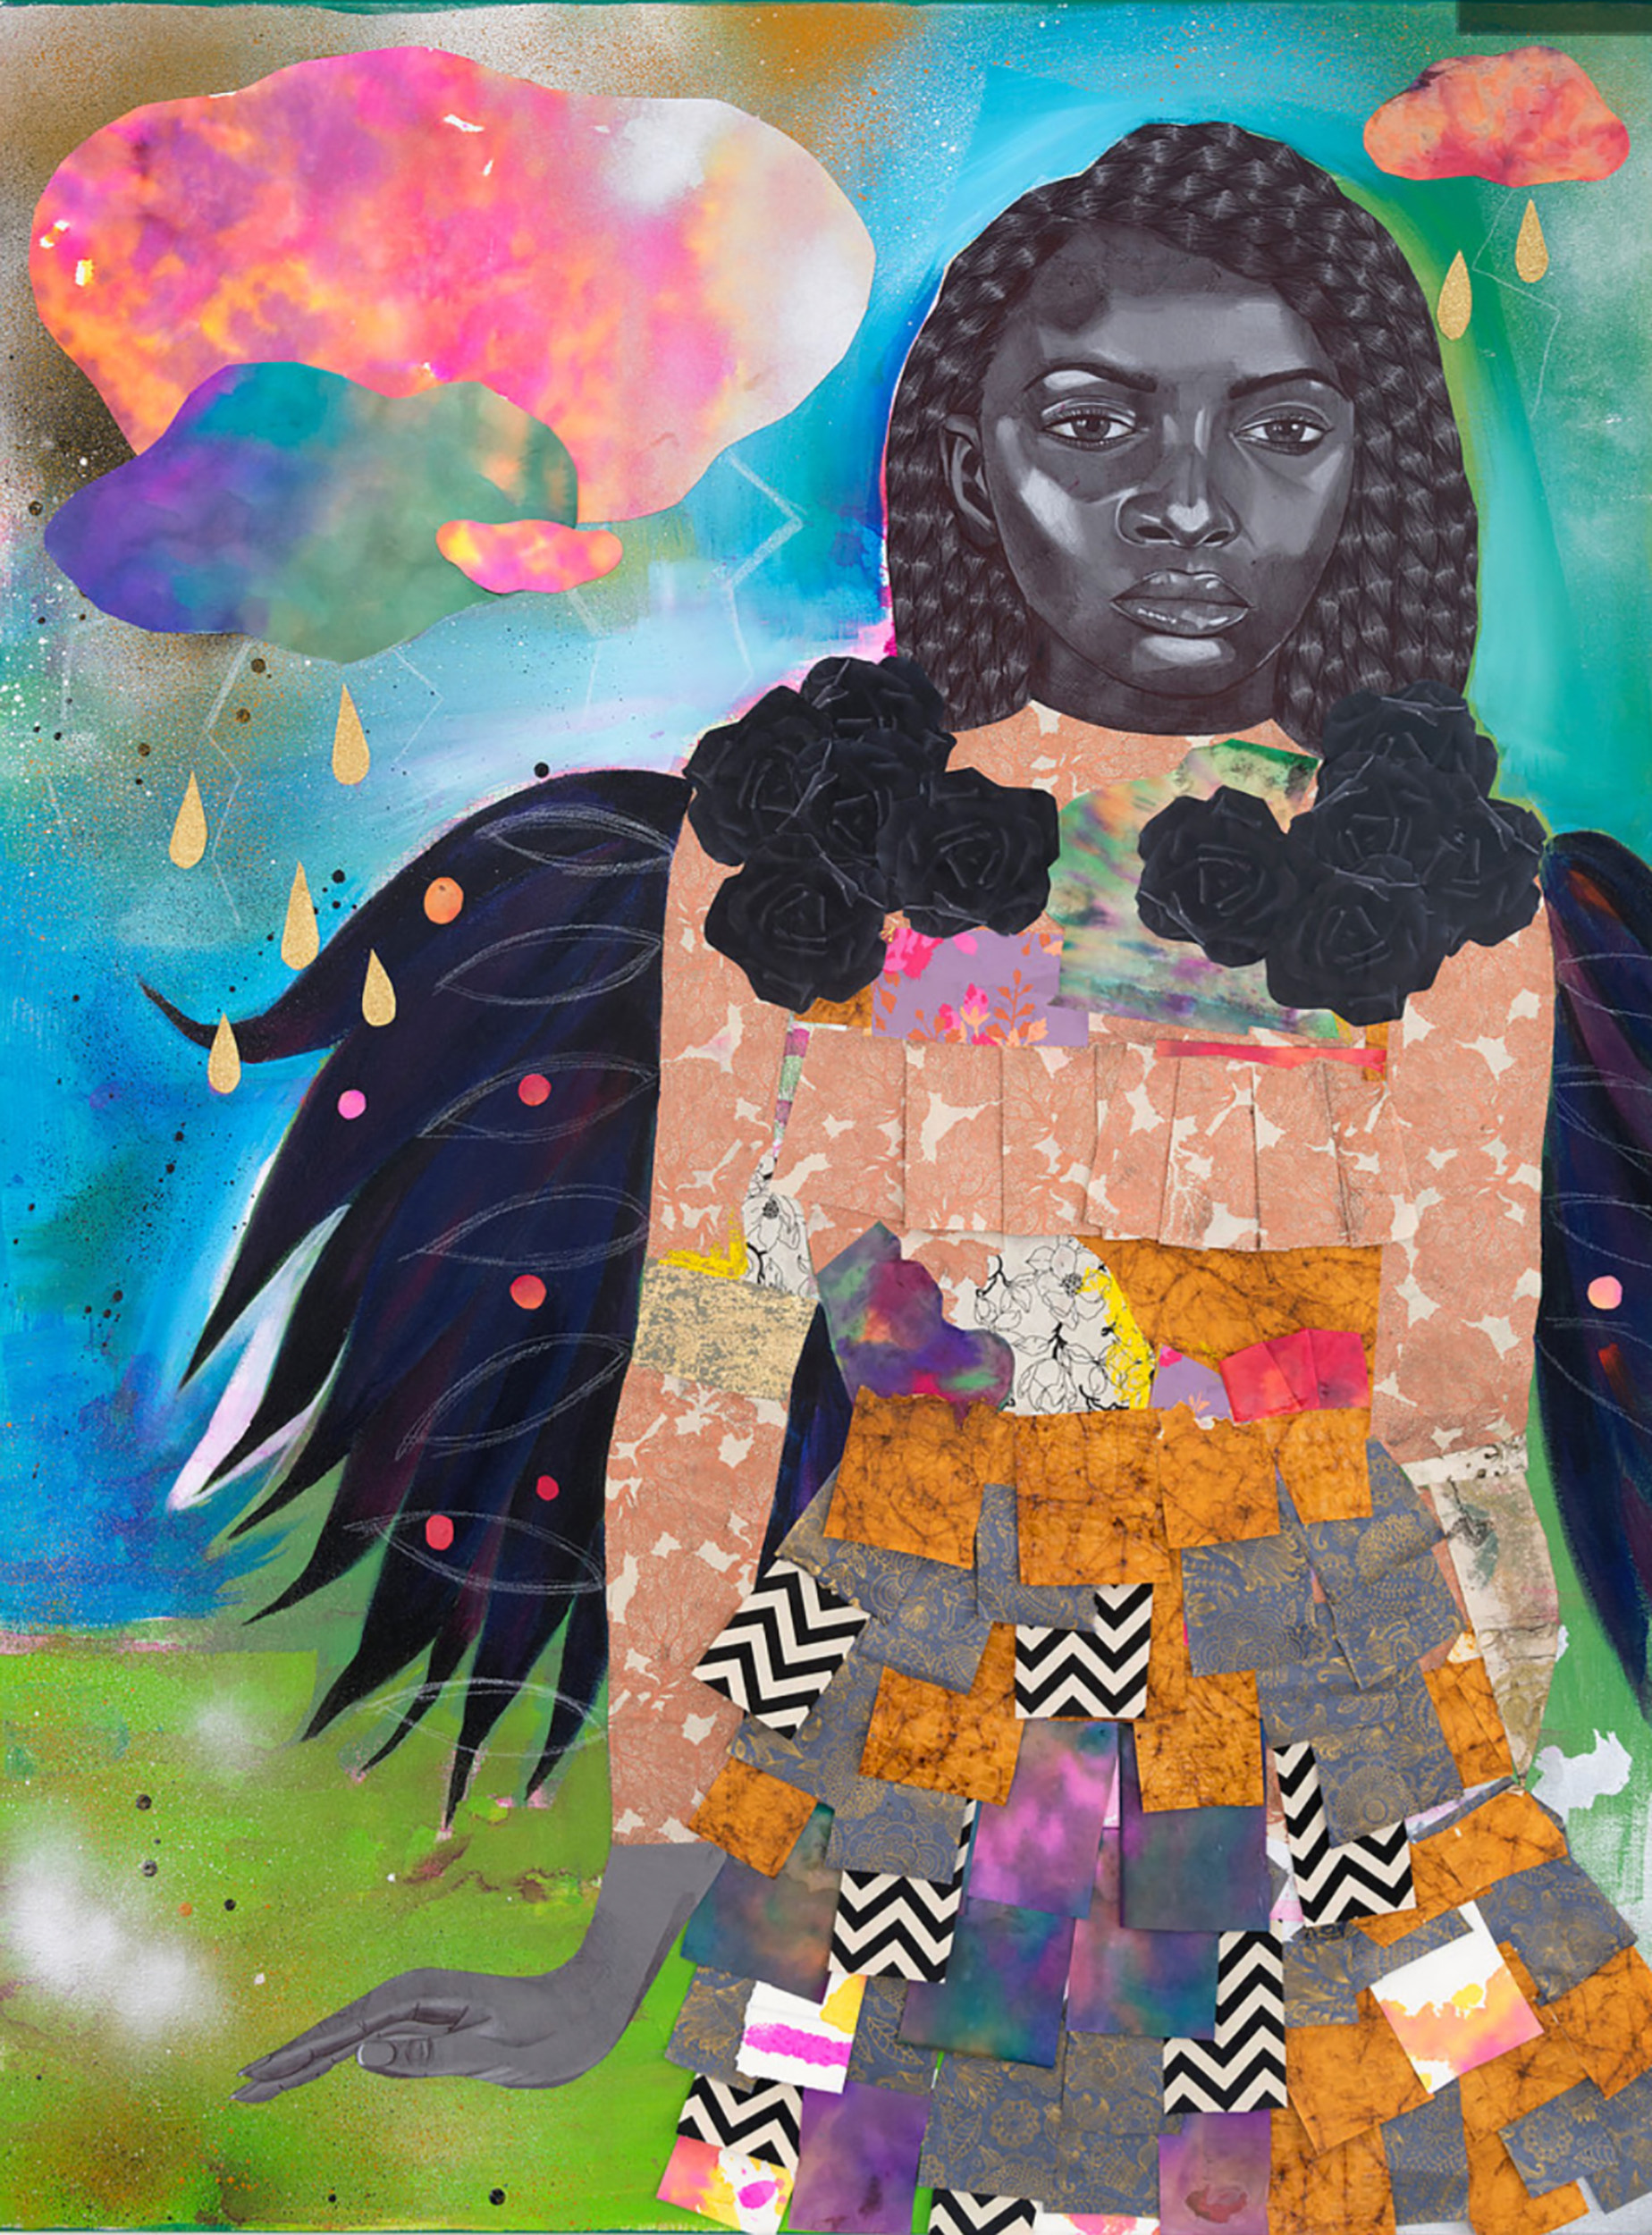 """""""The Witch of Joy Road,"""" 2017, 48 x 36 in.Acrylic, spray paint, ink an cut paper collage on canvas.Courtesy of Kravets/Wehby Gallery and the artist."""